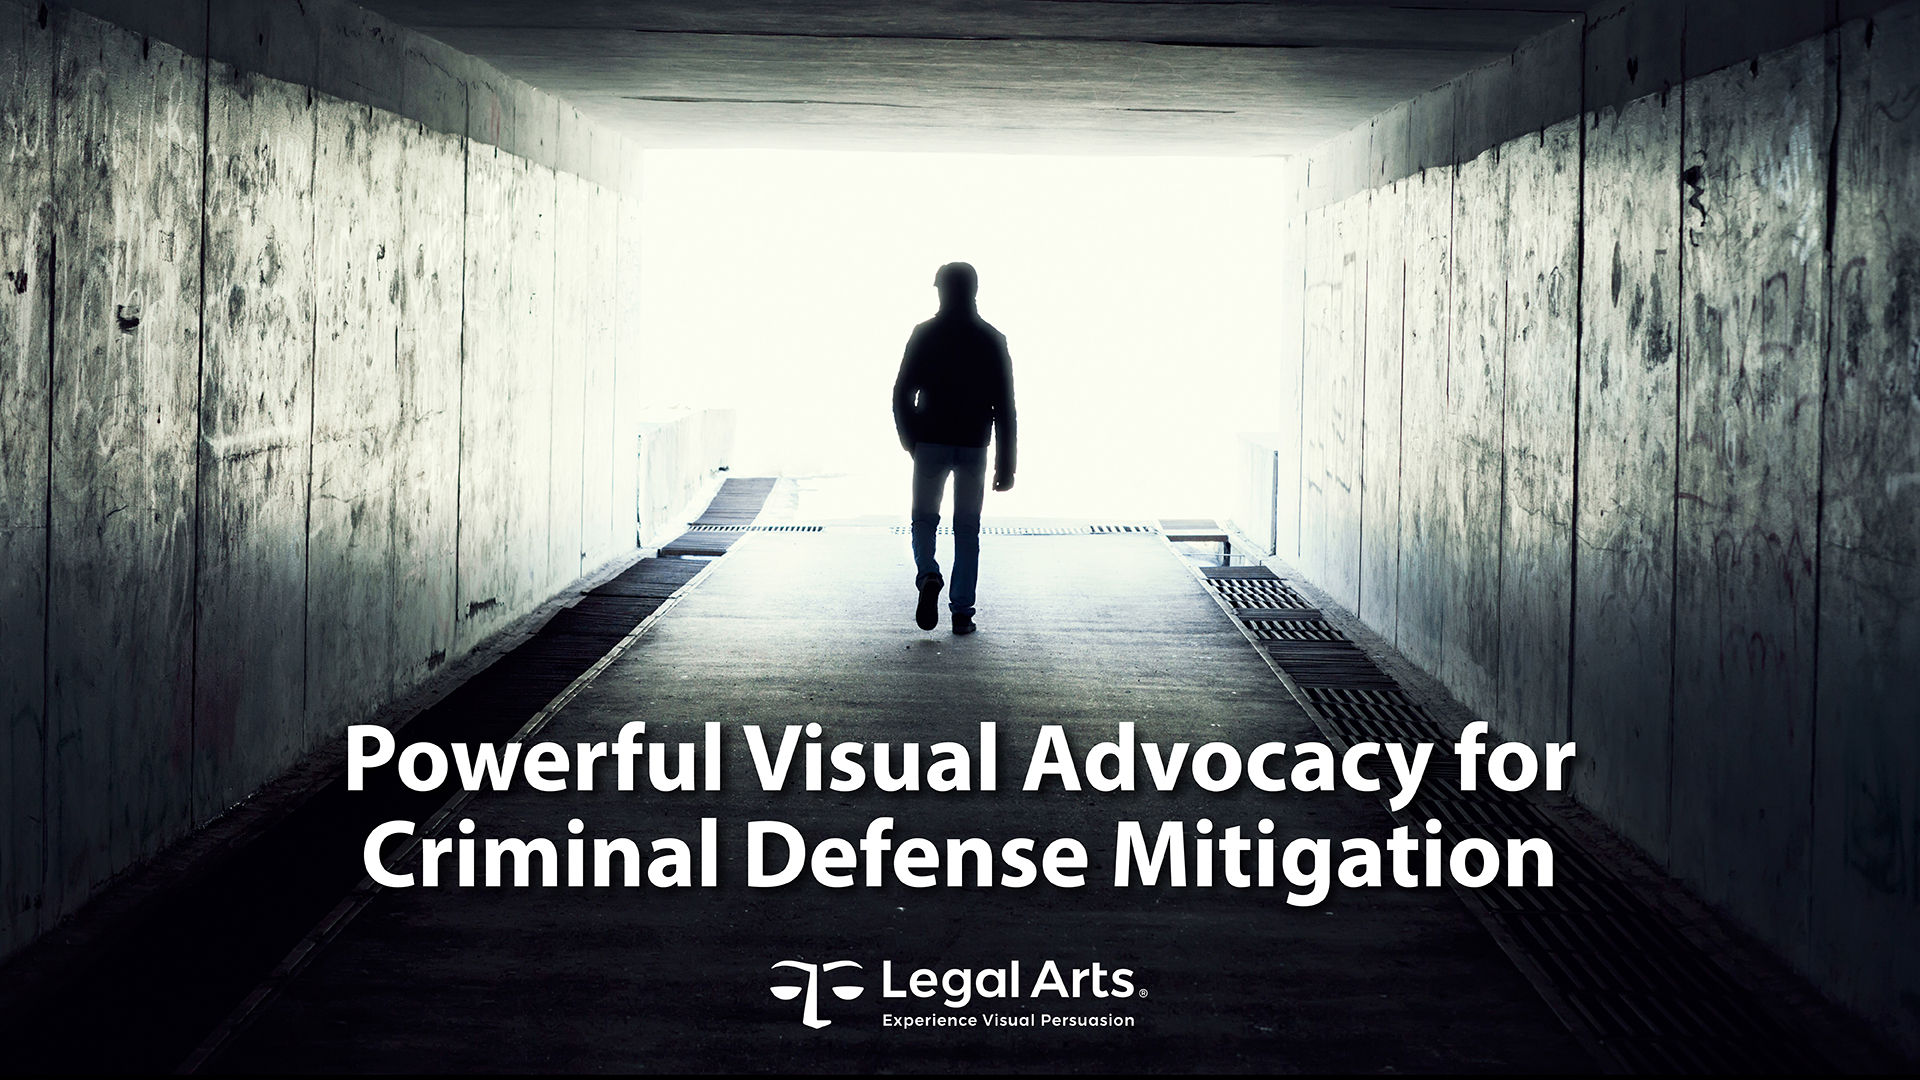 Powerful Visual Advocacy for Criminal Defense Mitigation